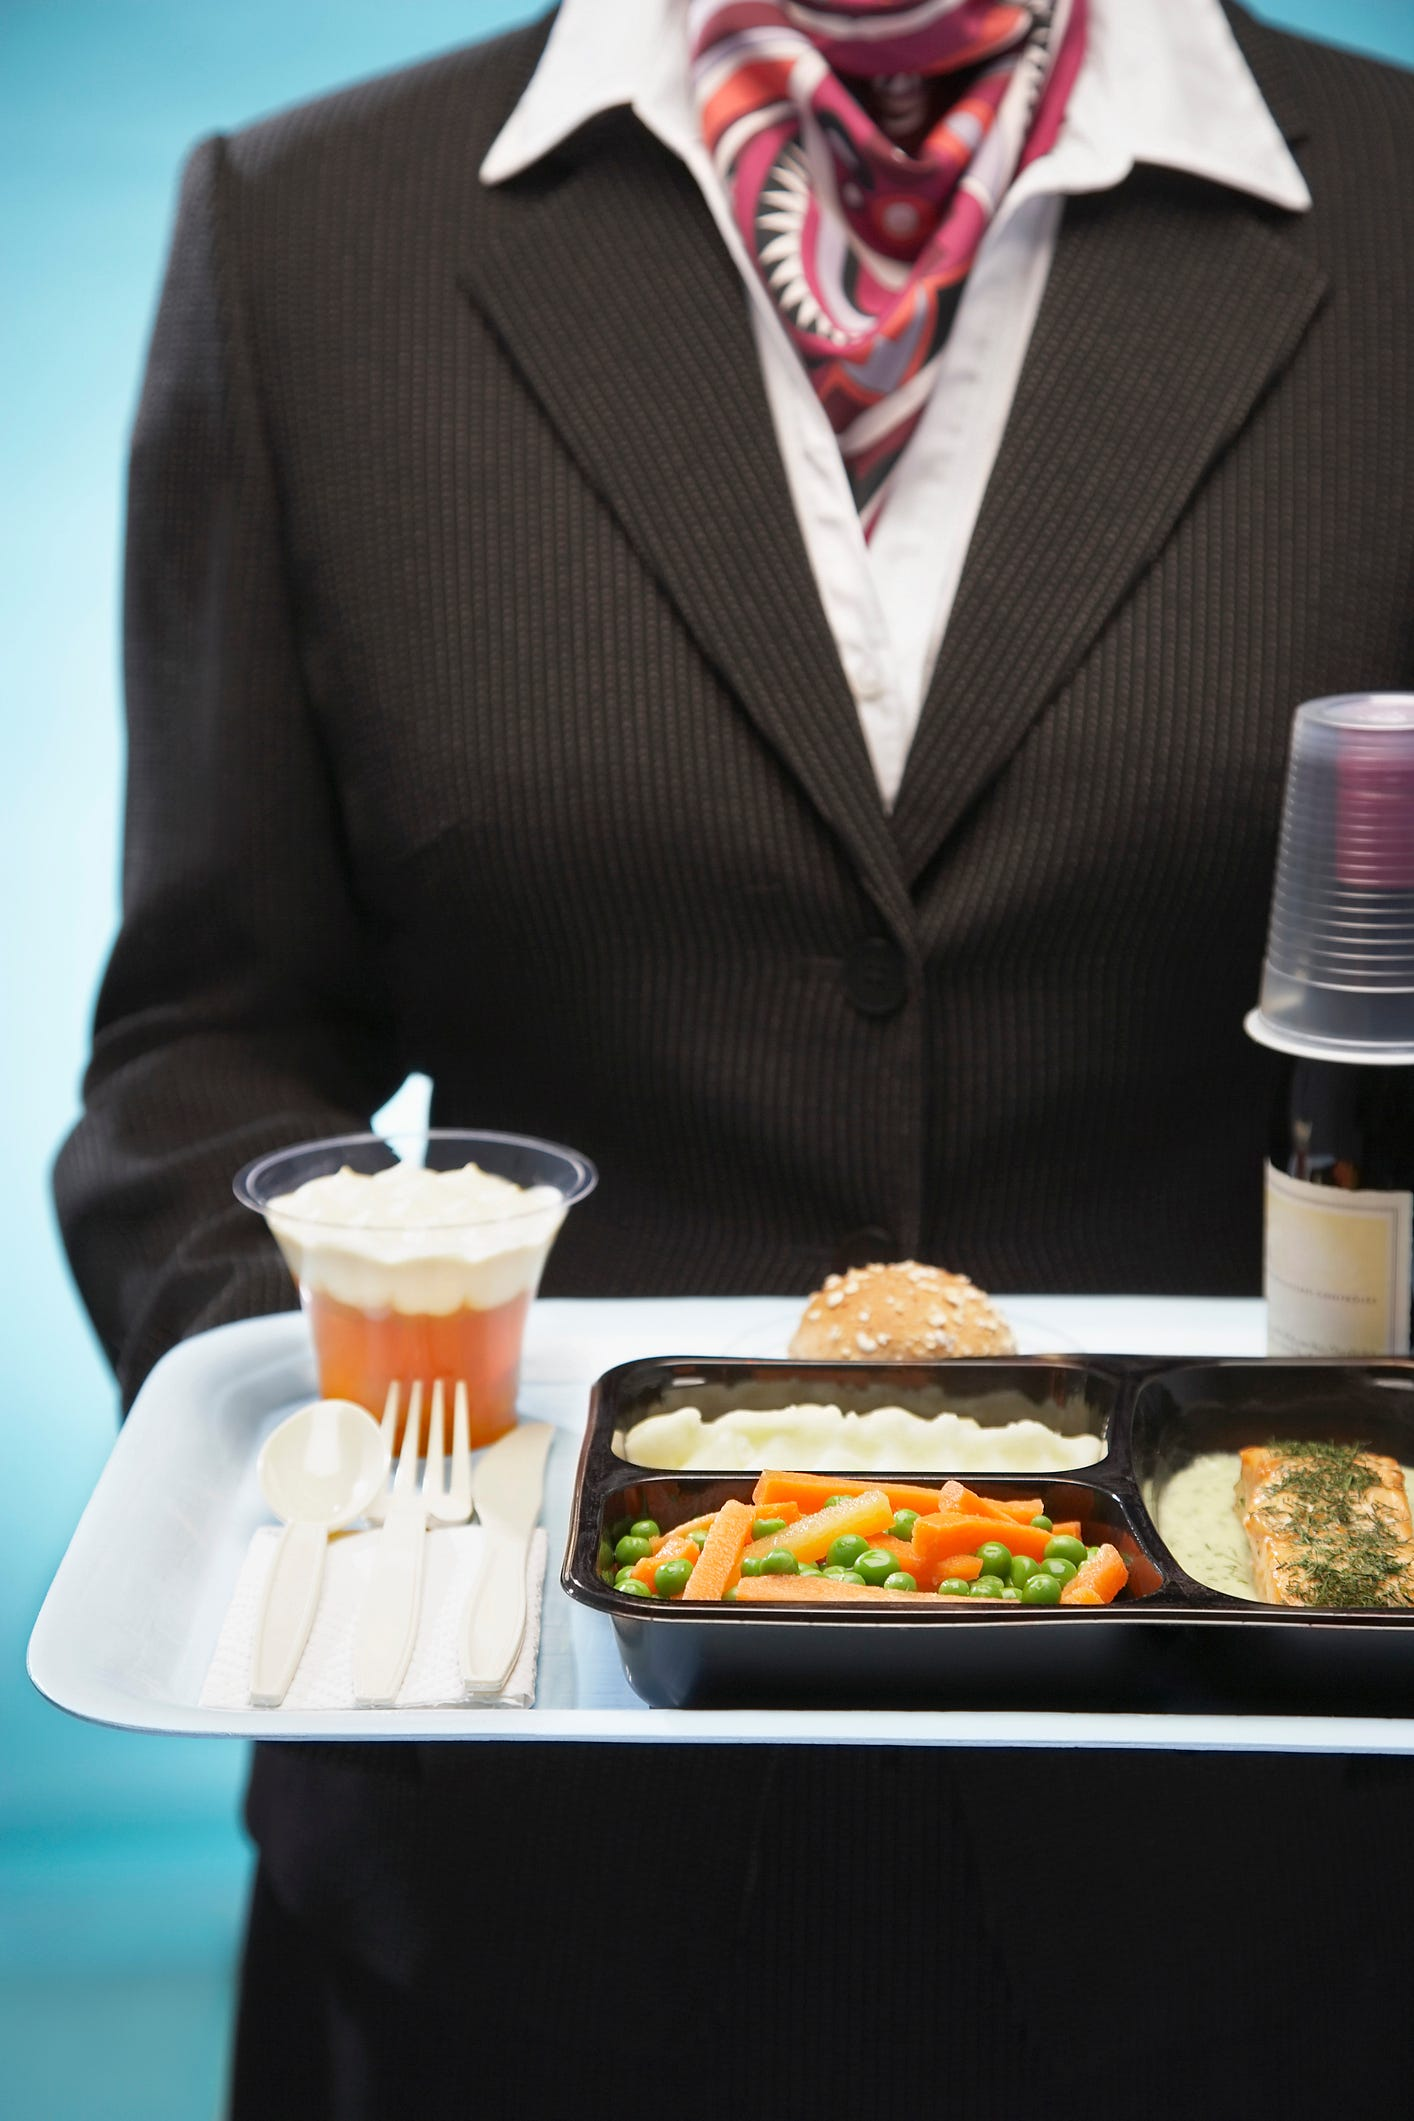 Slide 47 of 85: What does the crew eat on long flights?  Pilot meals vary from airline to airline. Usually on long flights, the crew meals are prepared in a similar way to passenger meals. The flight attendants bring the meals to the pilots once the the passengers have been served.The menu varies depending on the departure airport and the catering request.